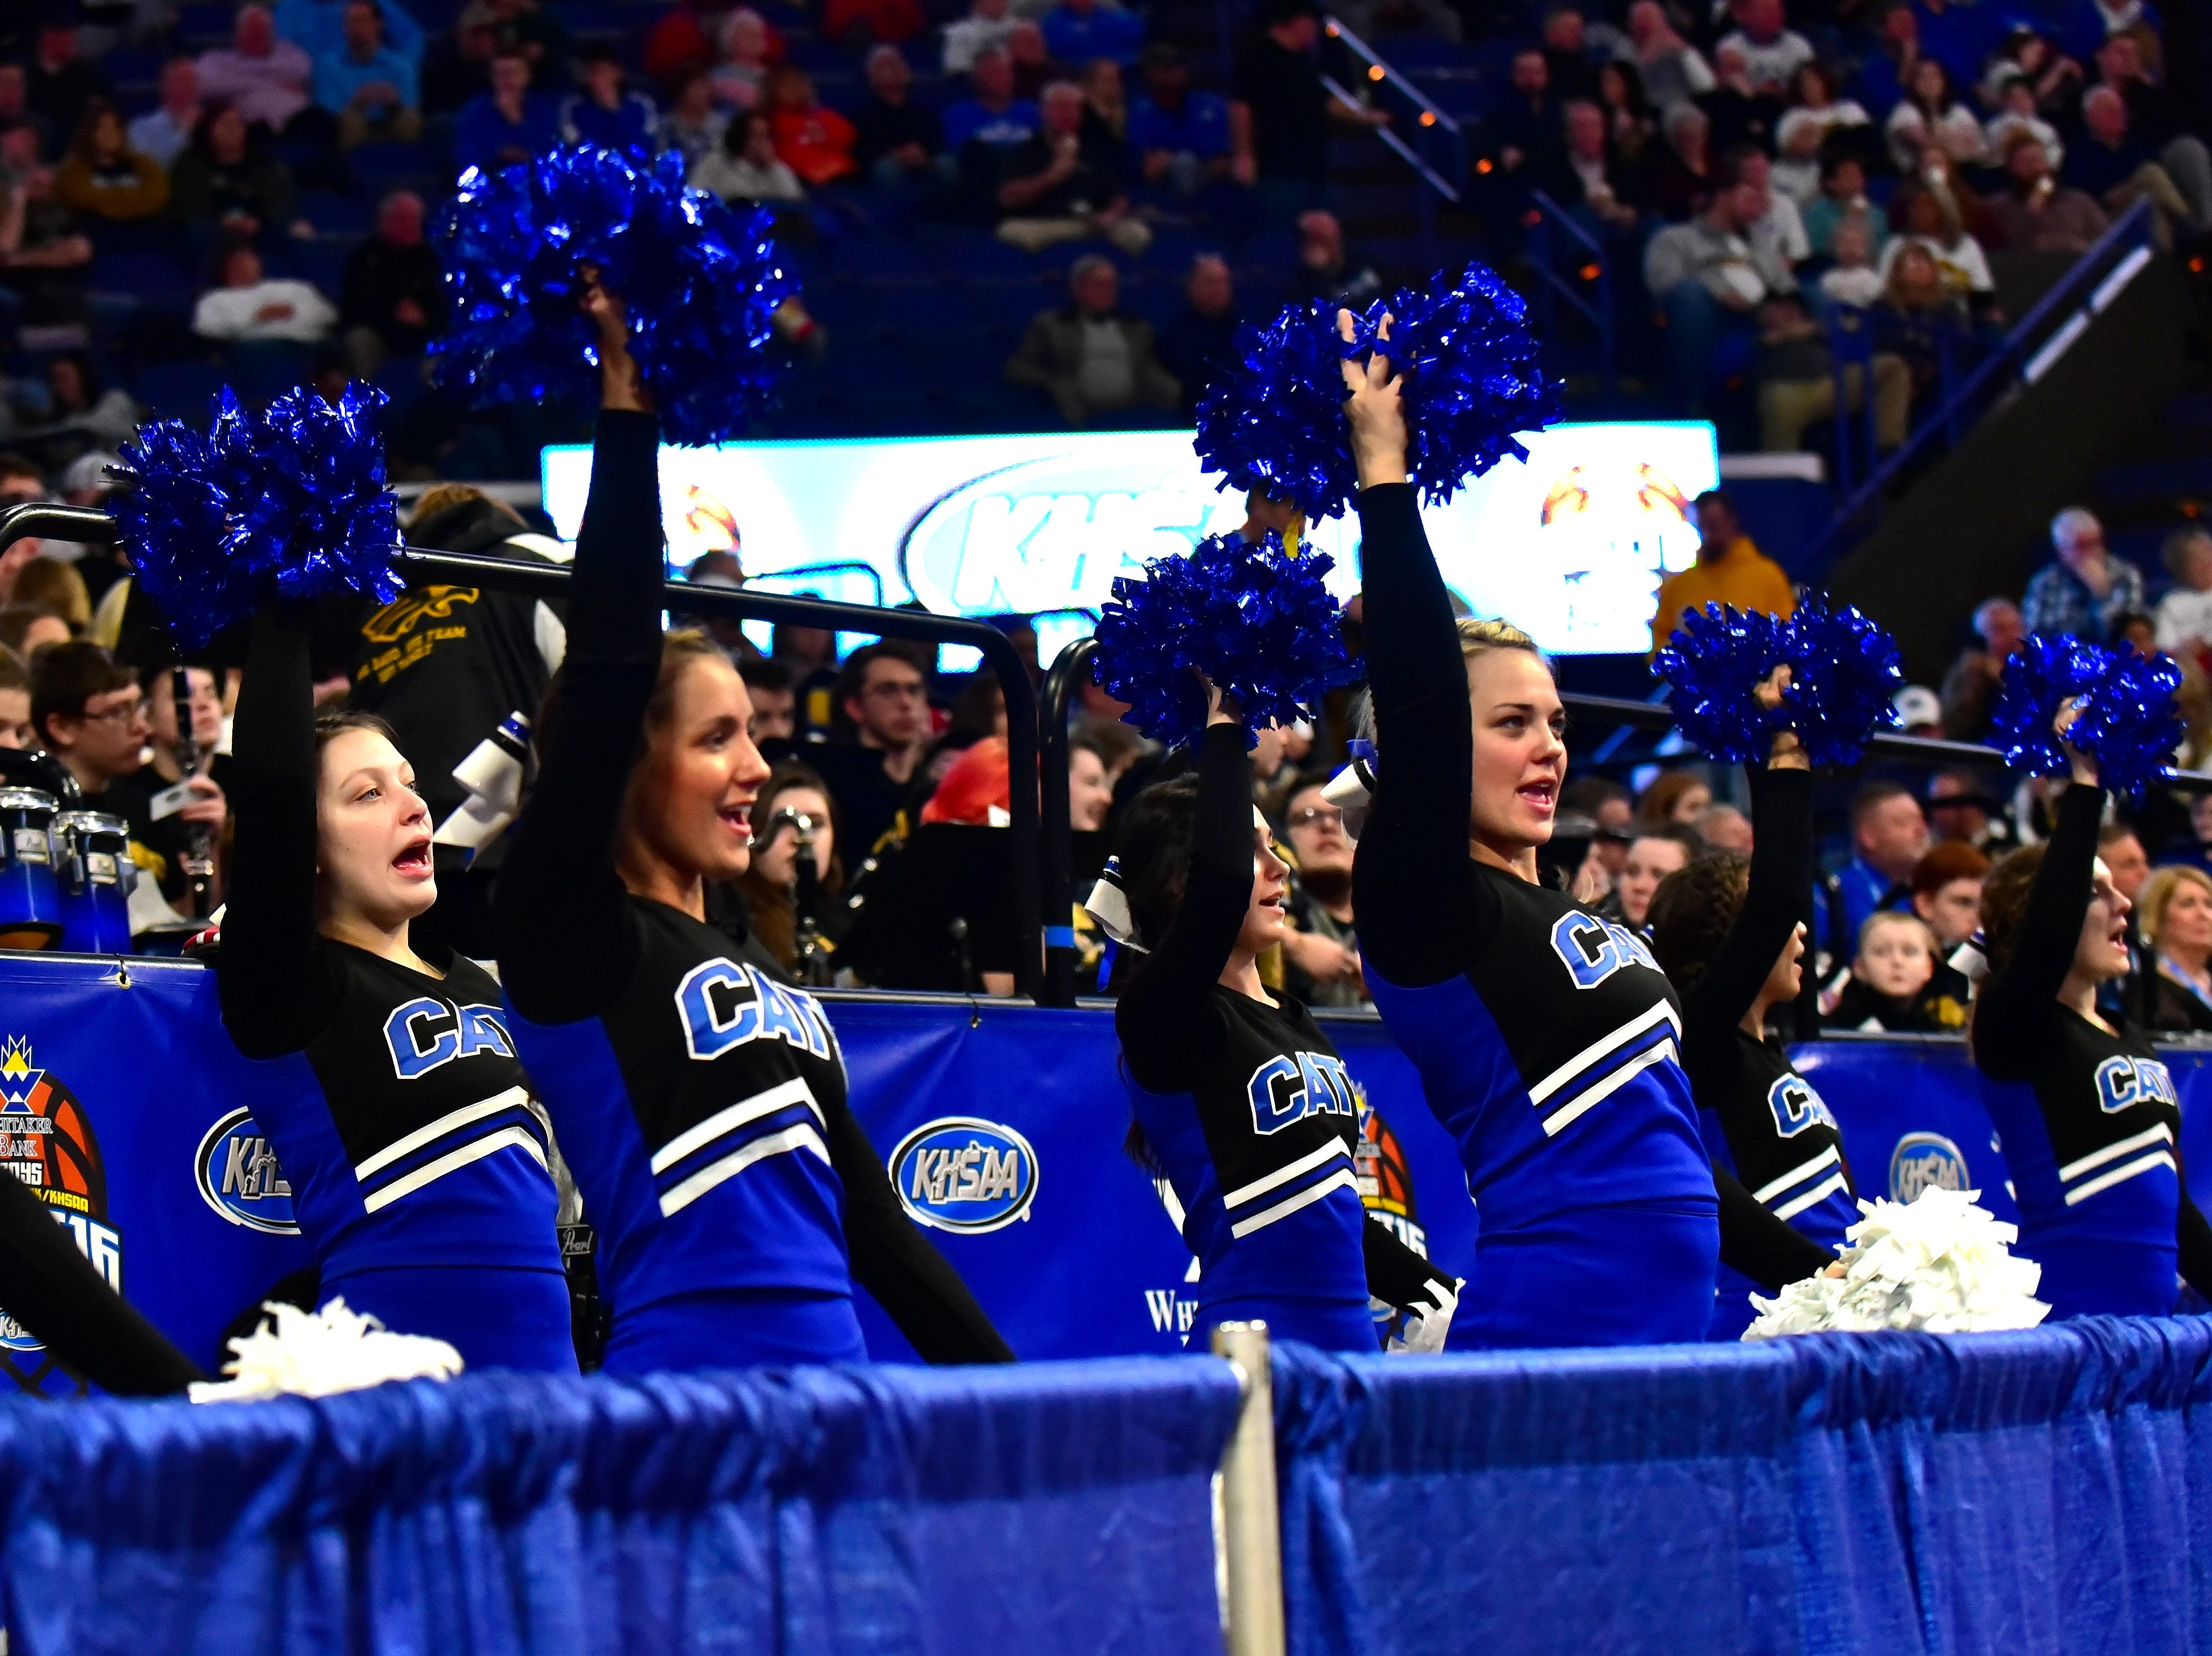 The Walton Verona cheerleaders celebrate the Bearcats win in round one at the KHSAA Sweet 16 Tournament at Rupp Arena in Lexington, KY, March 6, 2019